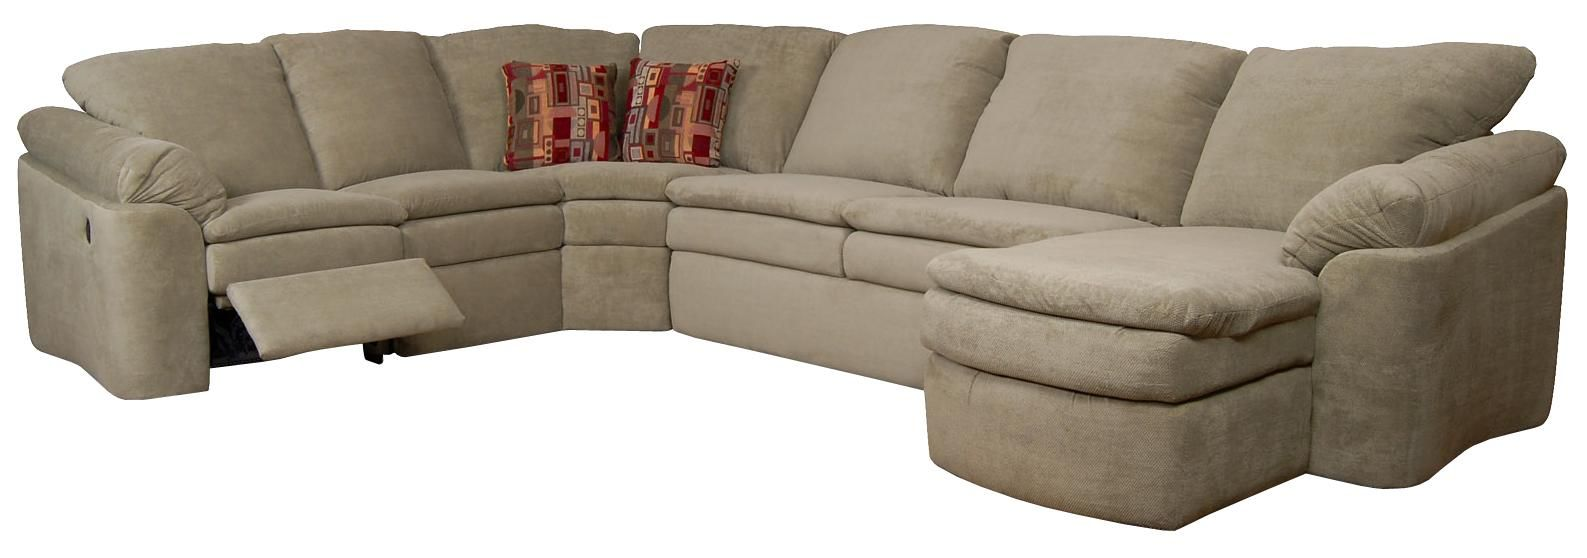 Seneca Falls Reclining Sectional By England Reclining Sectional